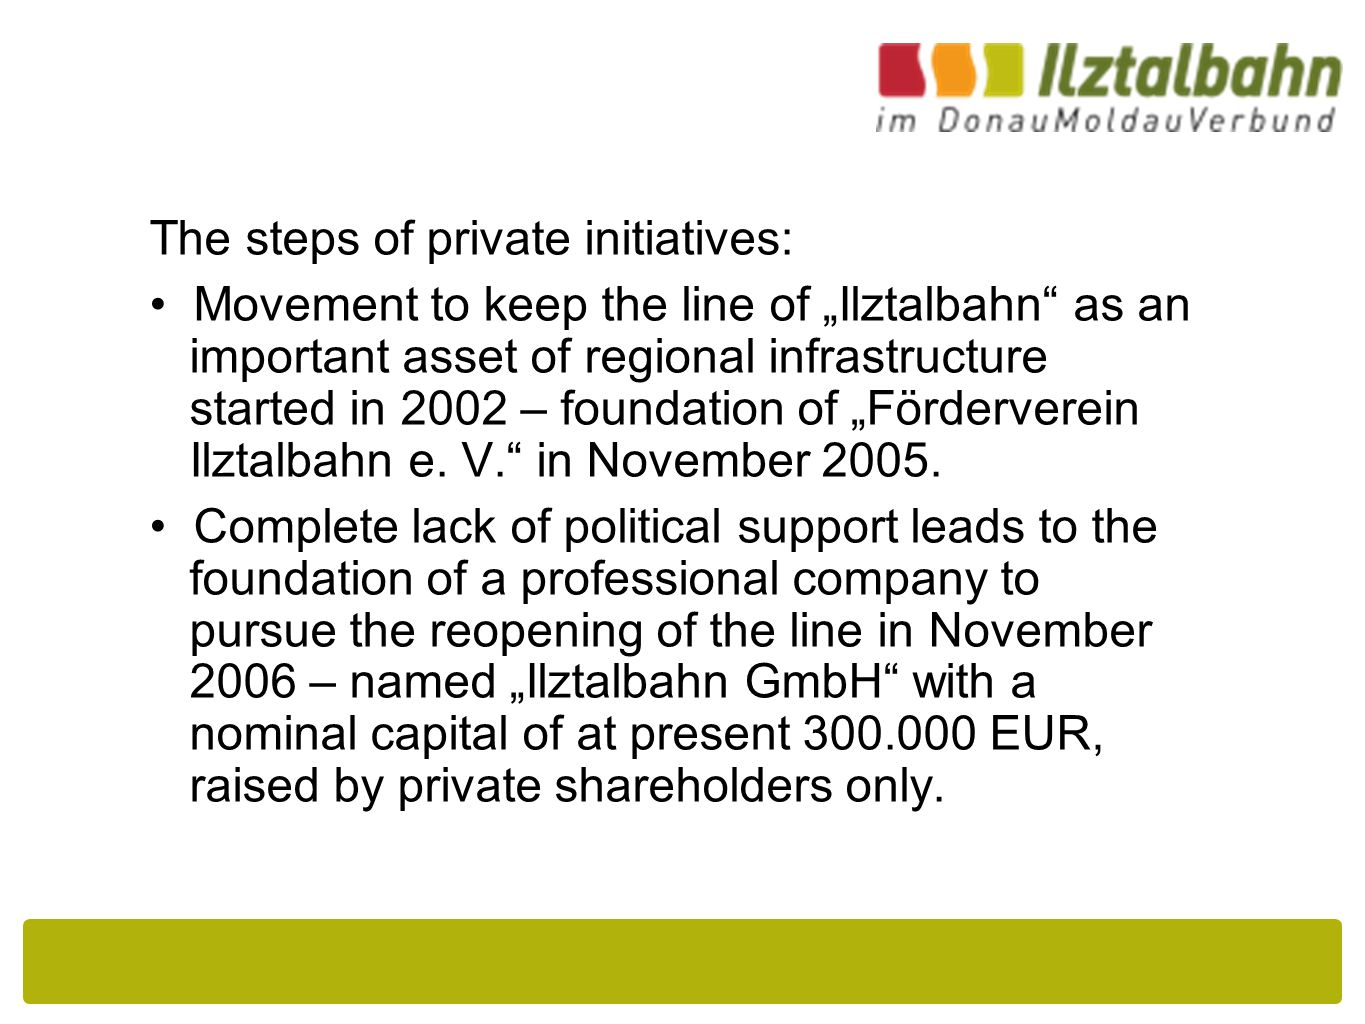 """The steps of private initiatives: Movement to keep the line of """"Ilztalbahn as an important asset of regional infrastructure started in 2002 – foundation of """"Förderverein Ilztalbahn e."""